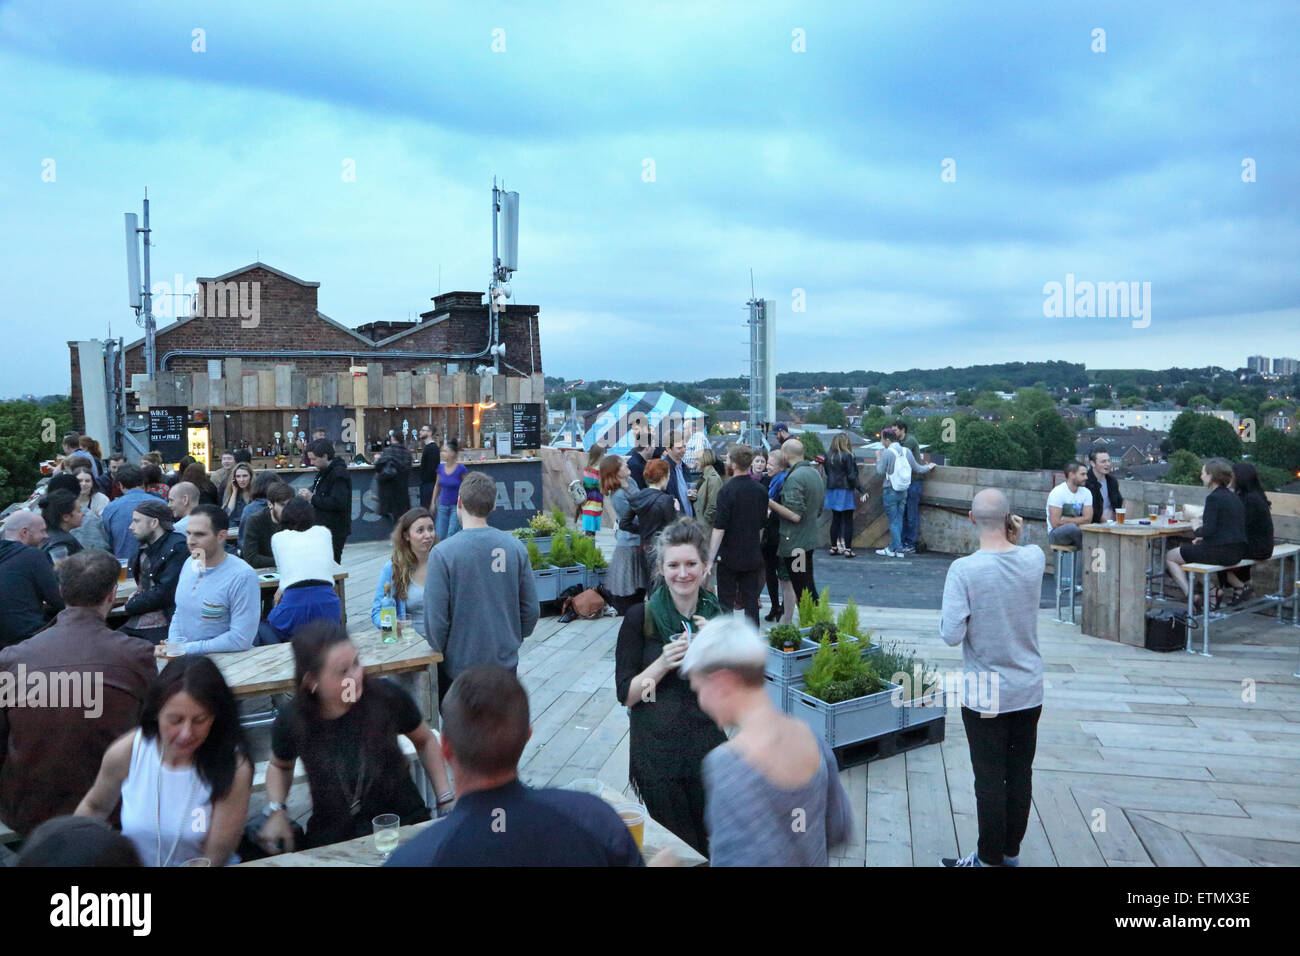 Customers Drinking At The Roof Top Bar At Peckhamu0027s Bussey Building   A  Converted Factory Now Home To Artists And Music Venues